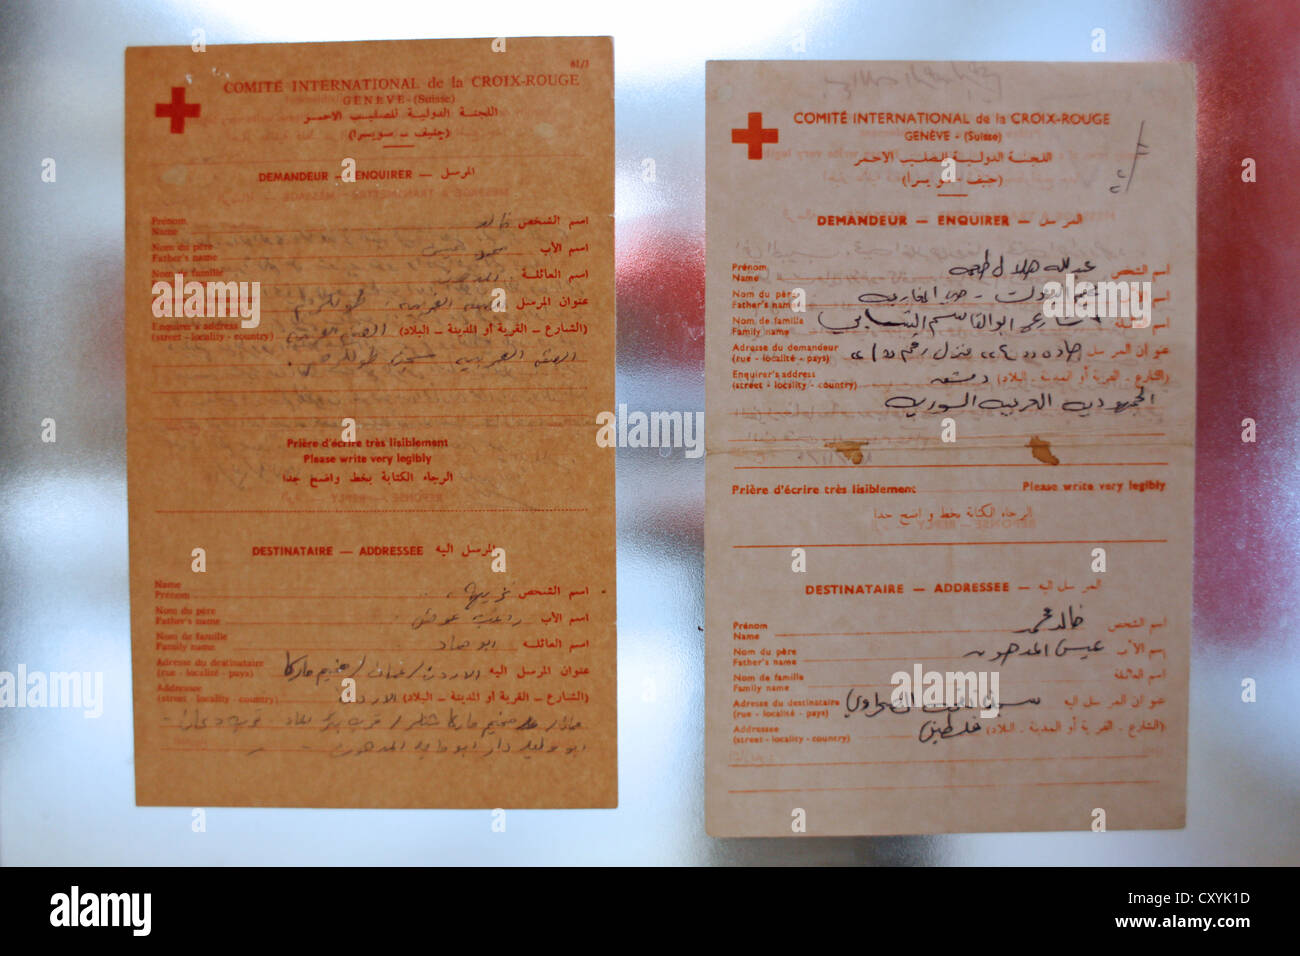 Red Cross request letters written by Palestinian prisoners displayed at the Abu-Jihad Museum in Al Quds university - Stock Image